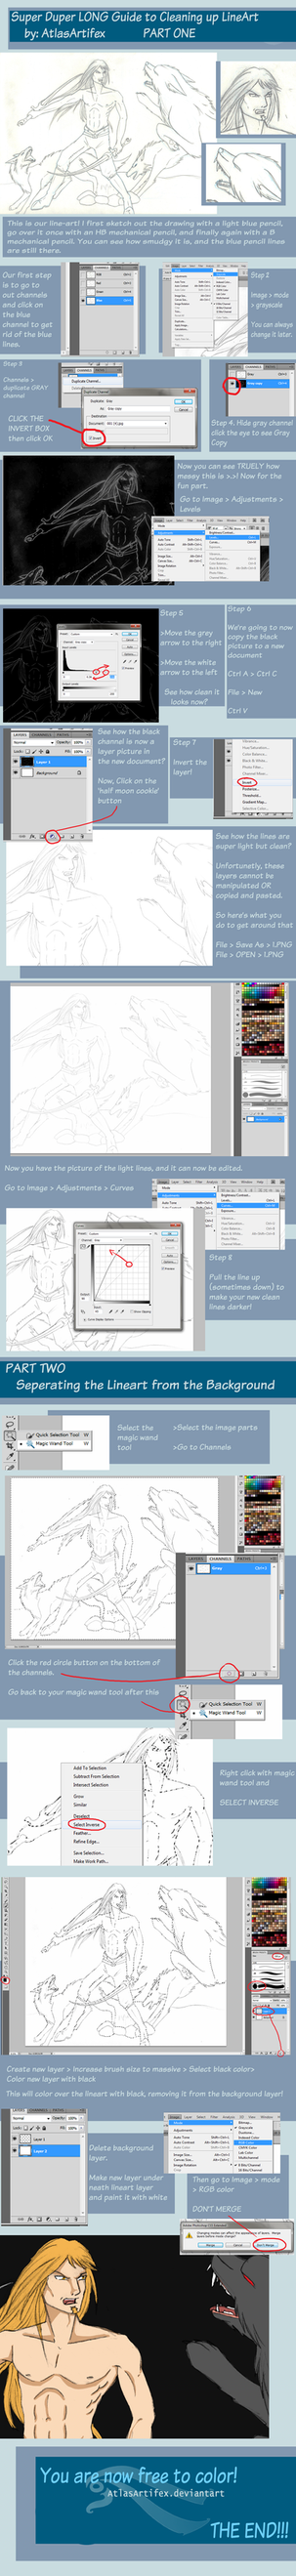 Digital painting lineart on photoshop tutorials deviantart murr000 2757 81 super cleaning up line art tutorial by atlasartifex baditri Choice Image